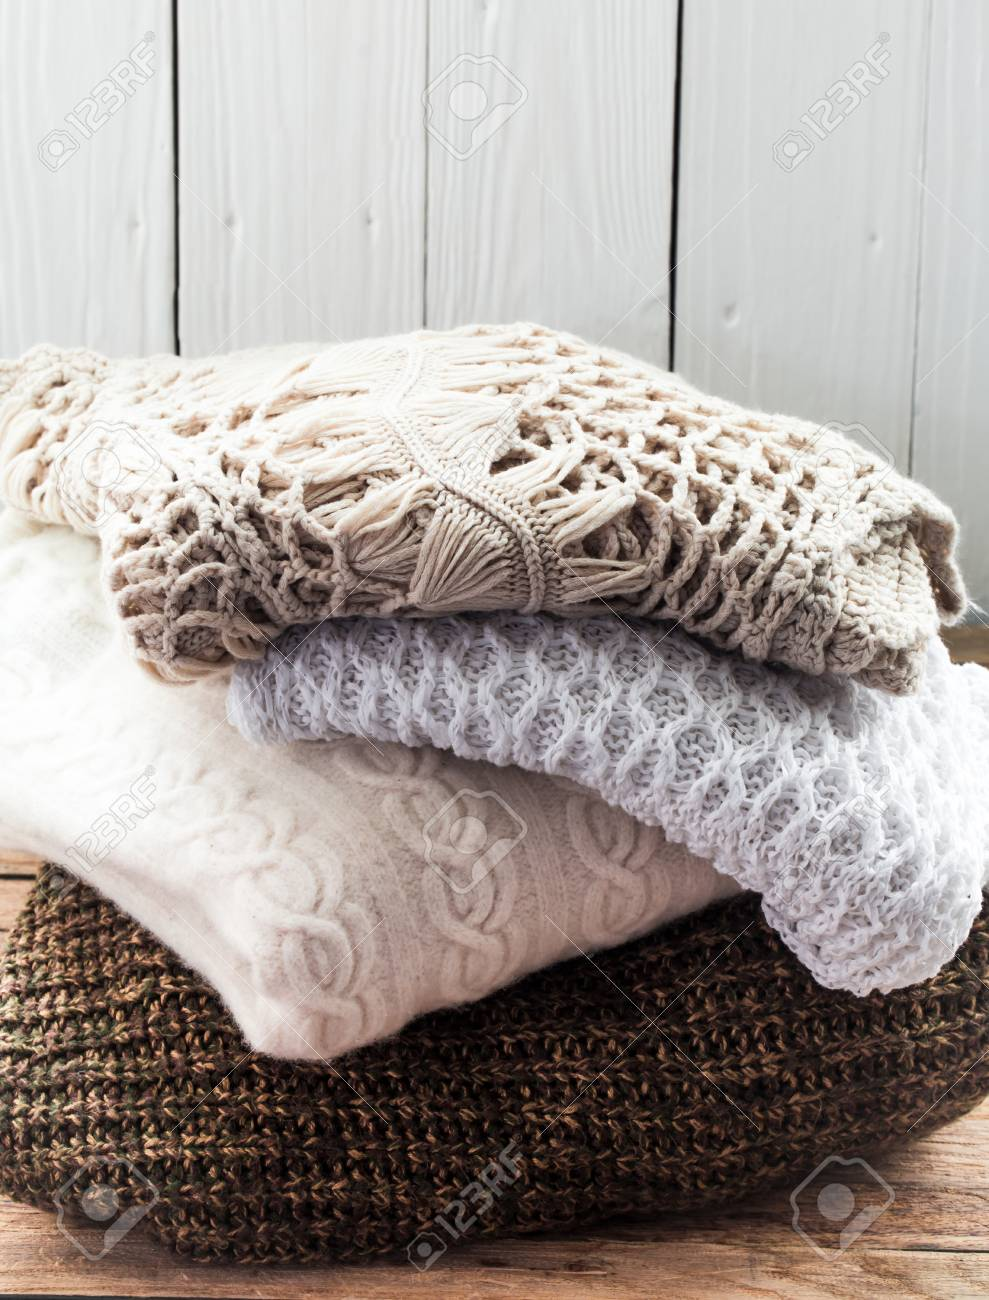 0f9591d7d2 Knit cozy sweater folded in a pile on wooden background .Warm the concept  Stock Photo